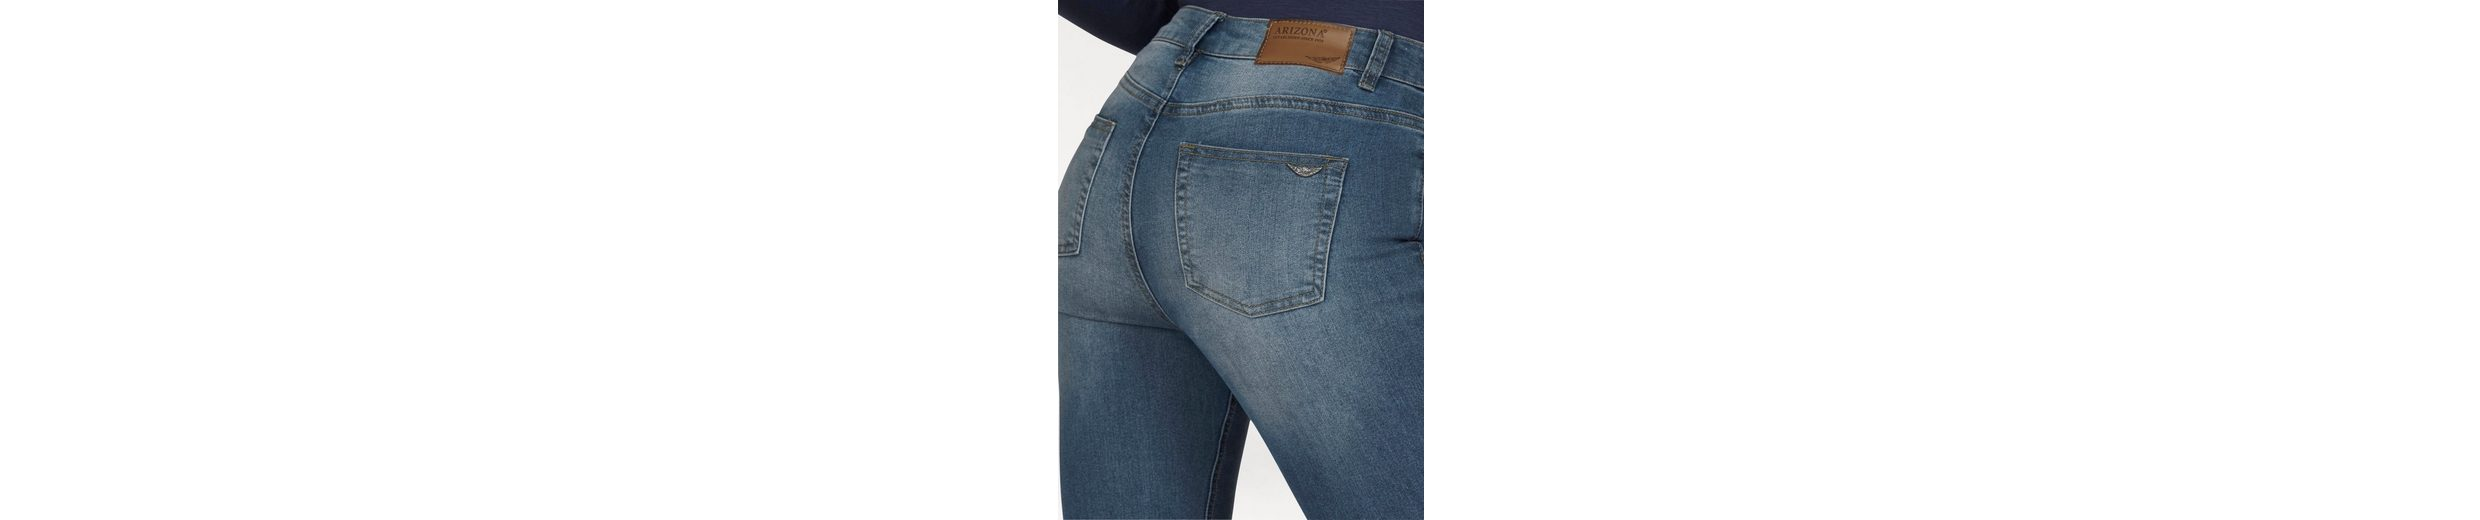 Arizona Skinny-fit-Jeans Shaping, High Waist